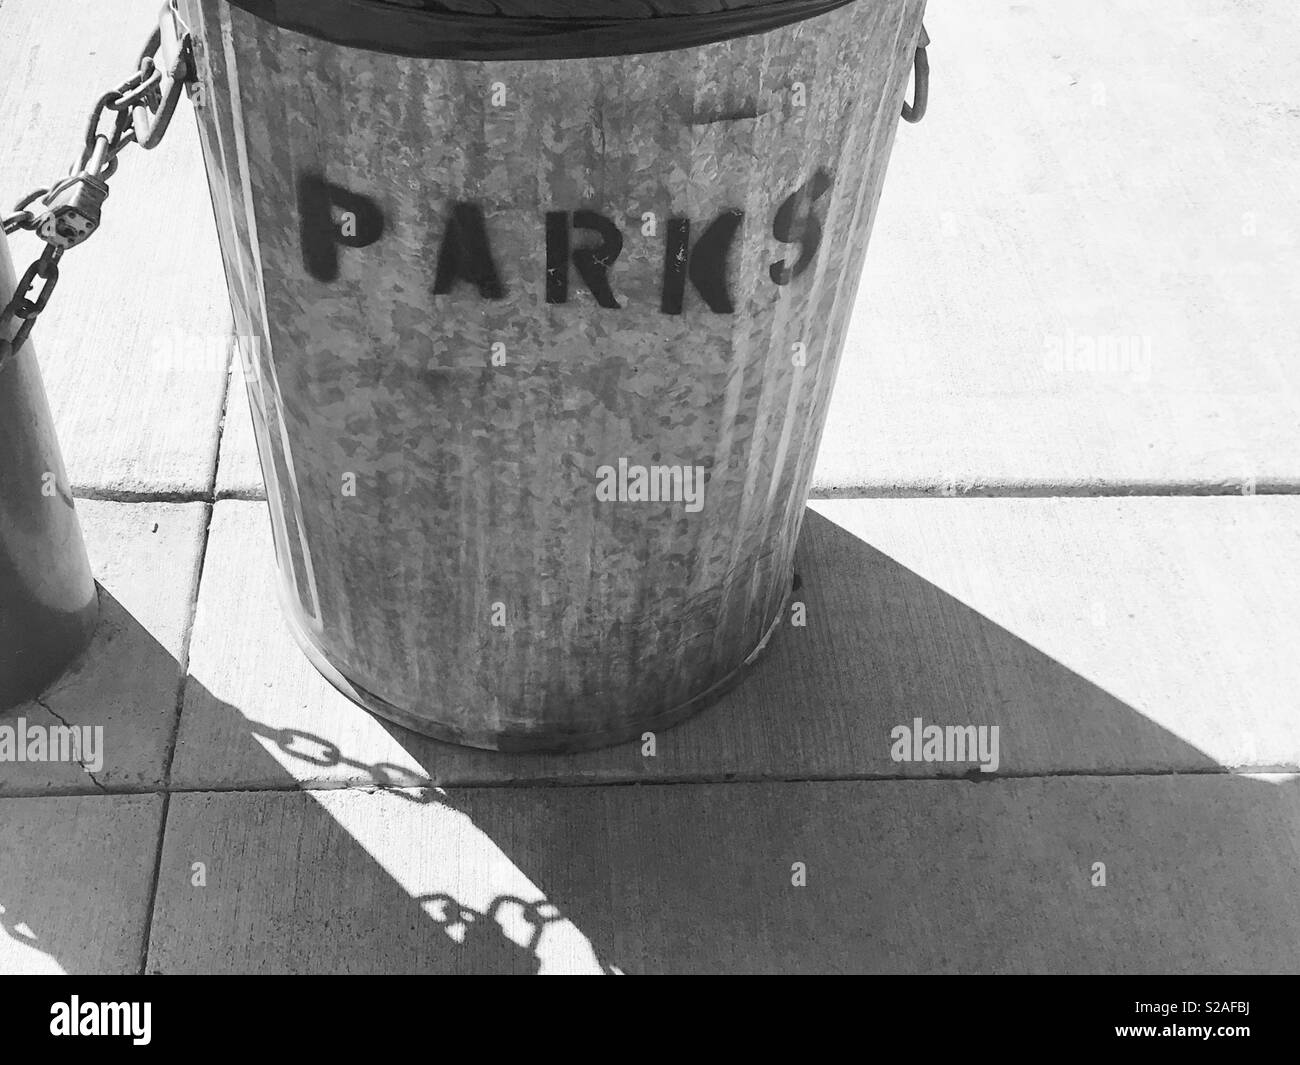 Garbage can at the park - black and white photograph- metal Garbage can spray painted on front with the word Parks - shadow photography - Stock Image